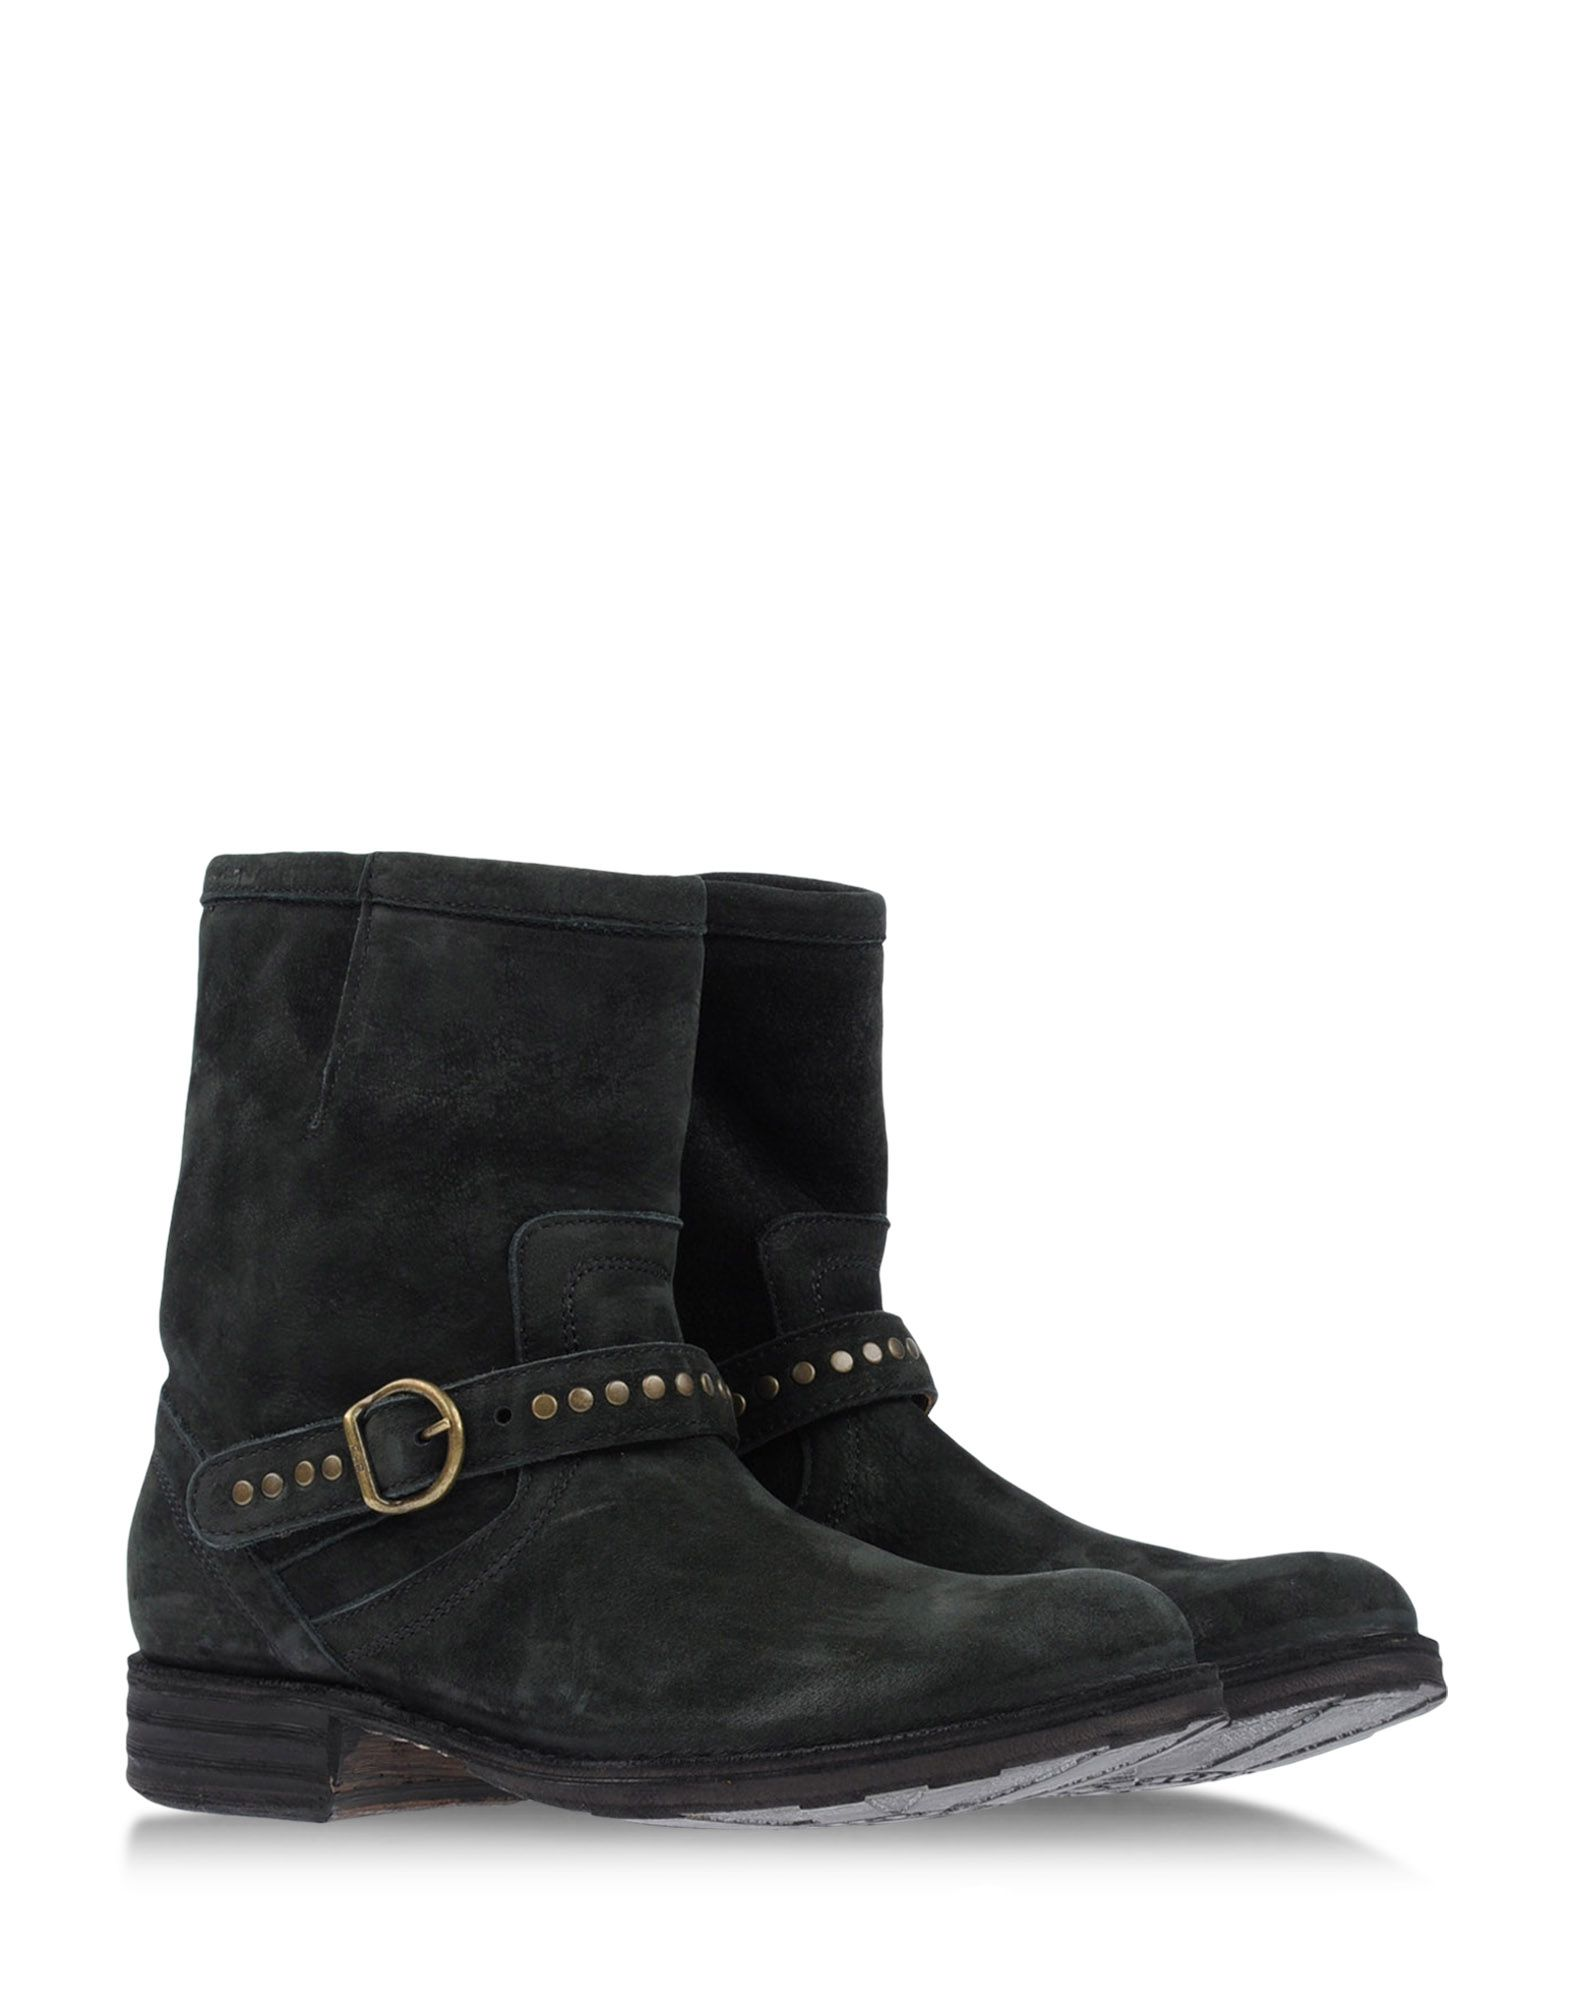 fiorentini baker ankle boots in green dark green lyst. Black Bedroom Furniture Sets. Home Design Ideas